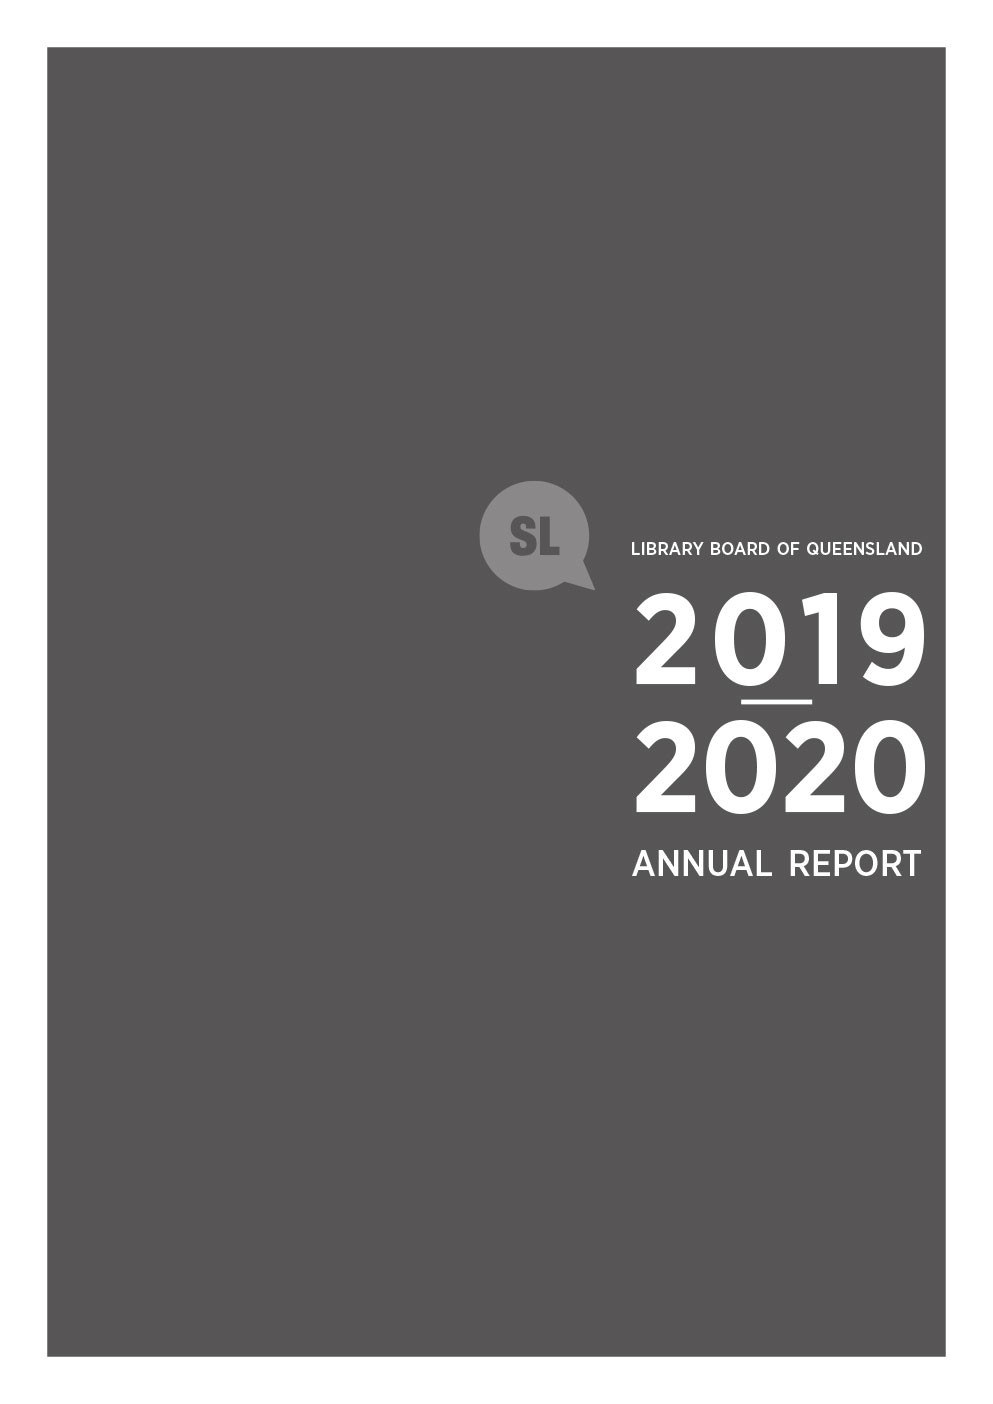 Cover page for the Library Board of Queensland 201920 Annual Report